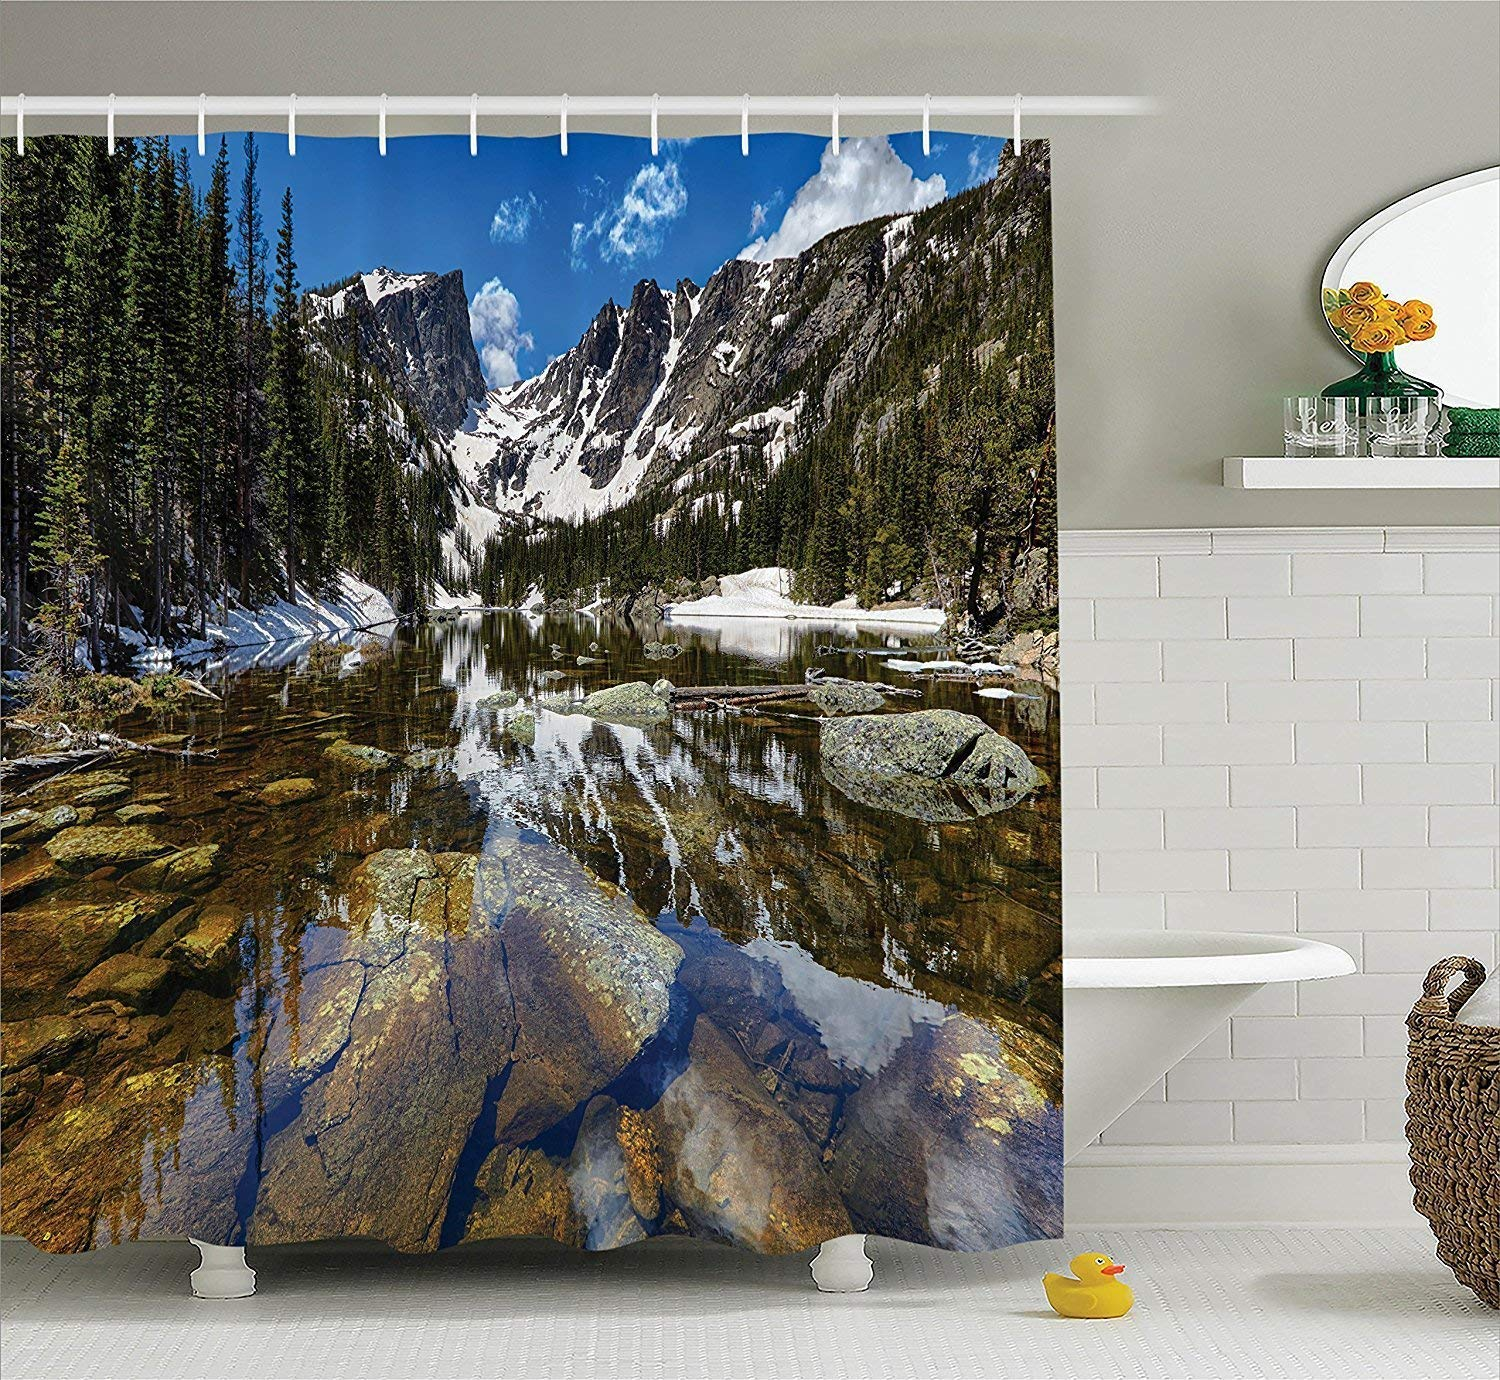 Diversión sexy werert Decor Lake House Decor werert Shower Curtain Set, Dream Mirroring Lake at The Mountain Park in West America River Snow Away Photo, Bathroom Accessories,verde Marrón Blue 60 X 72 f67e98